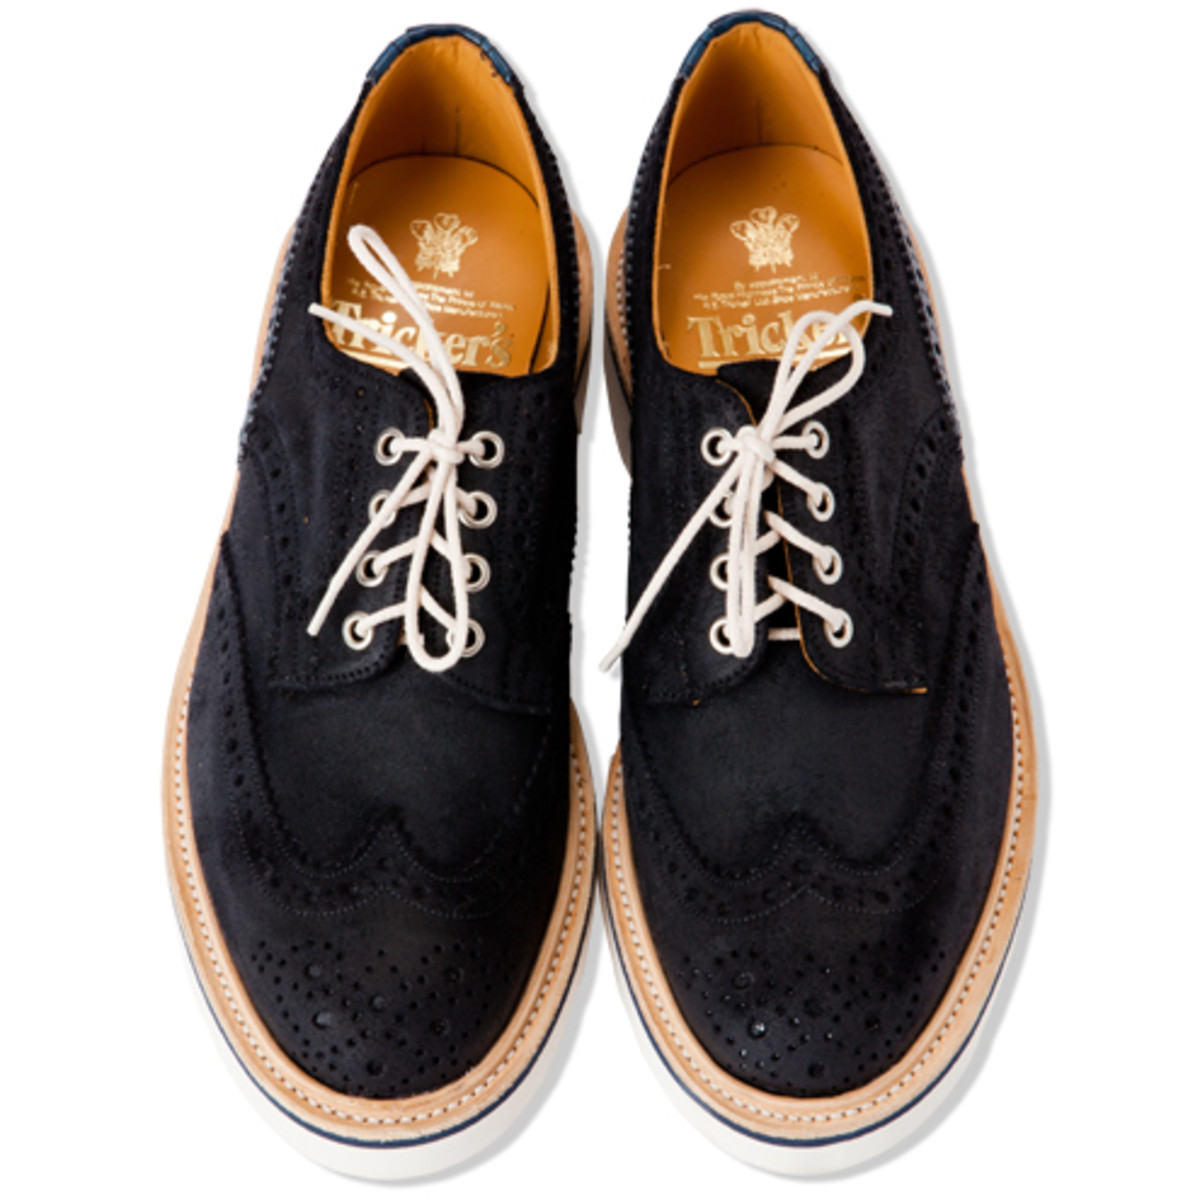 cash-ca-trickers-2013-spring-summer-1